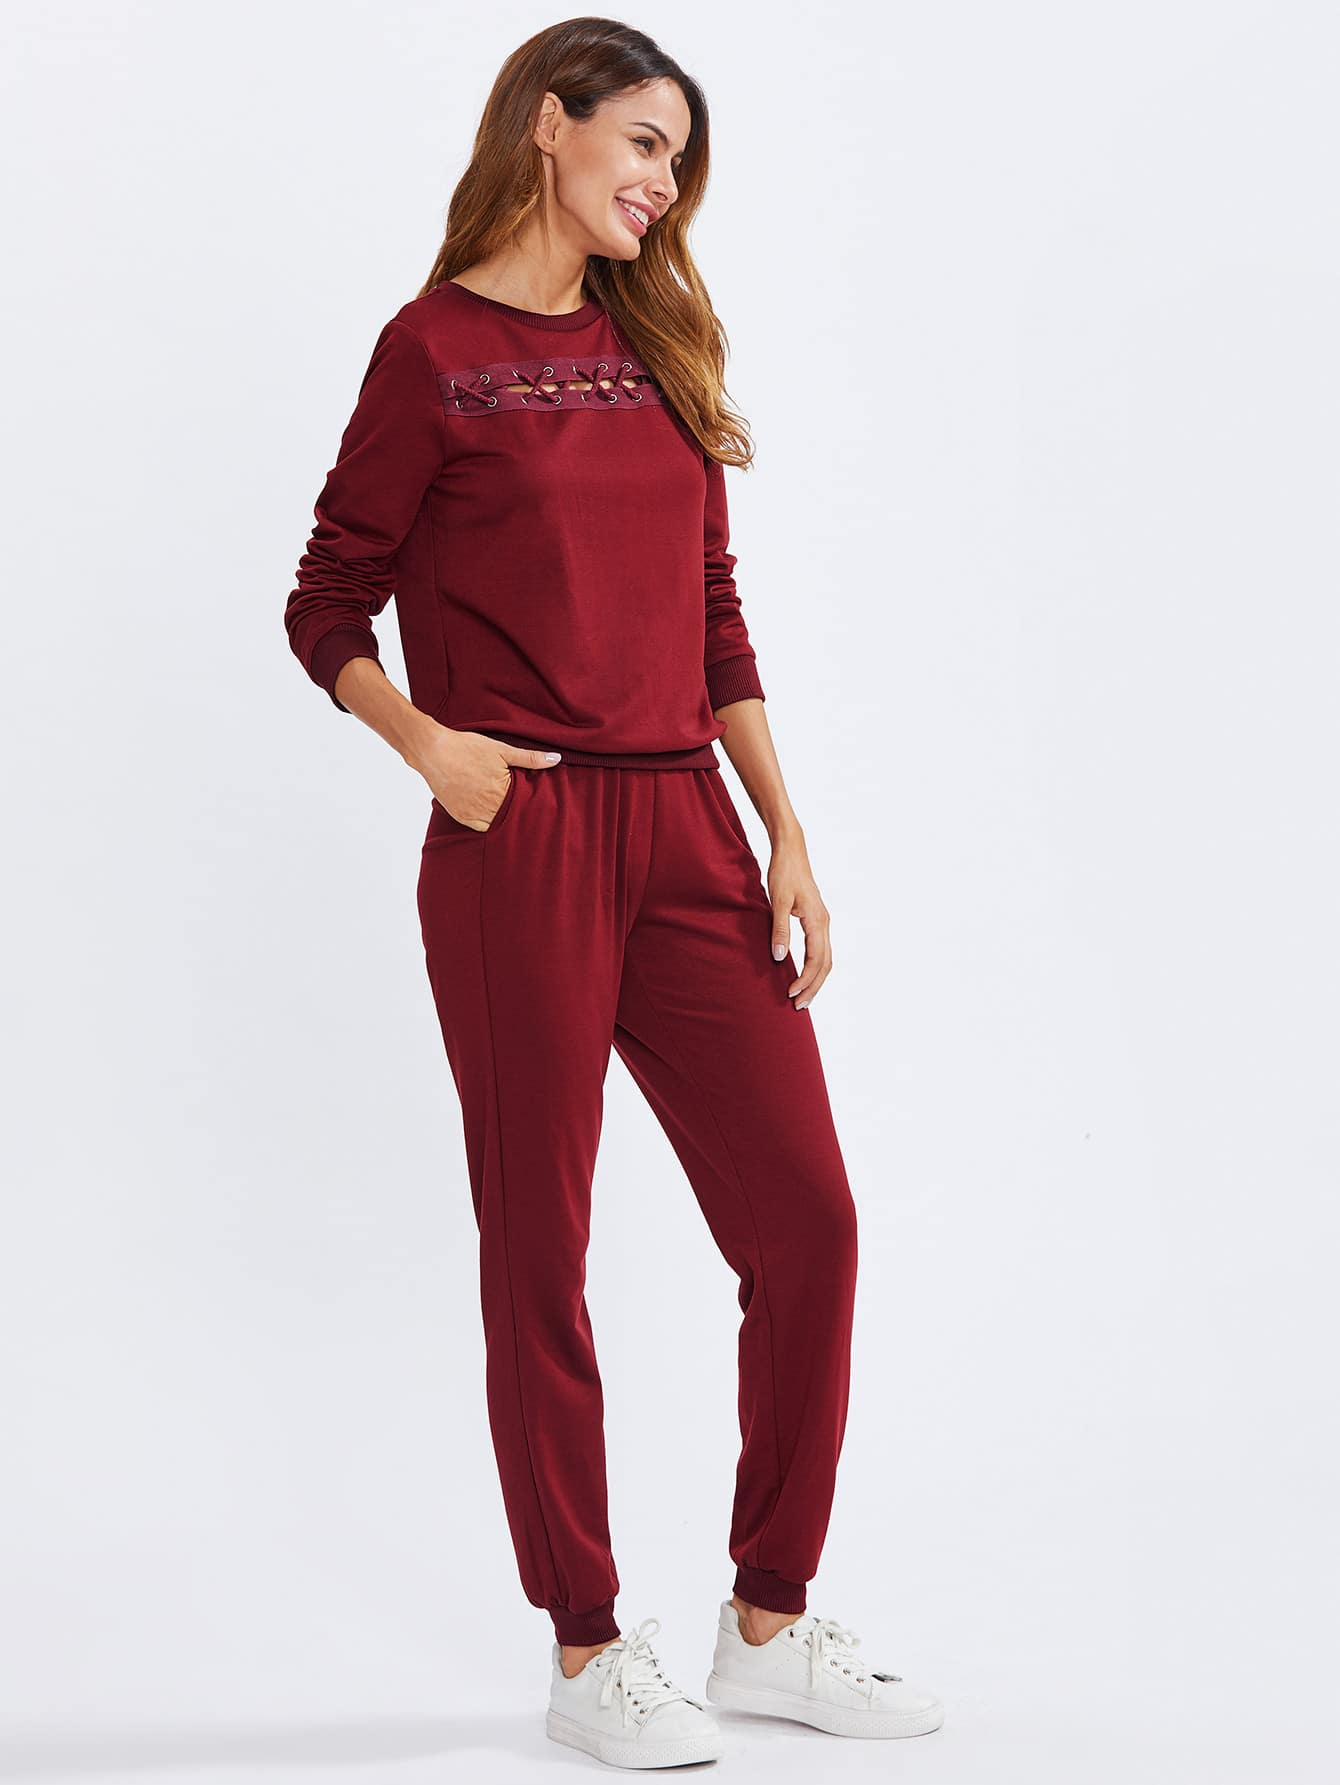 Eyelet Crisscross Detail Pullover And Sweatpants Set pearl and layered lace detail pullover